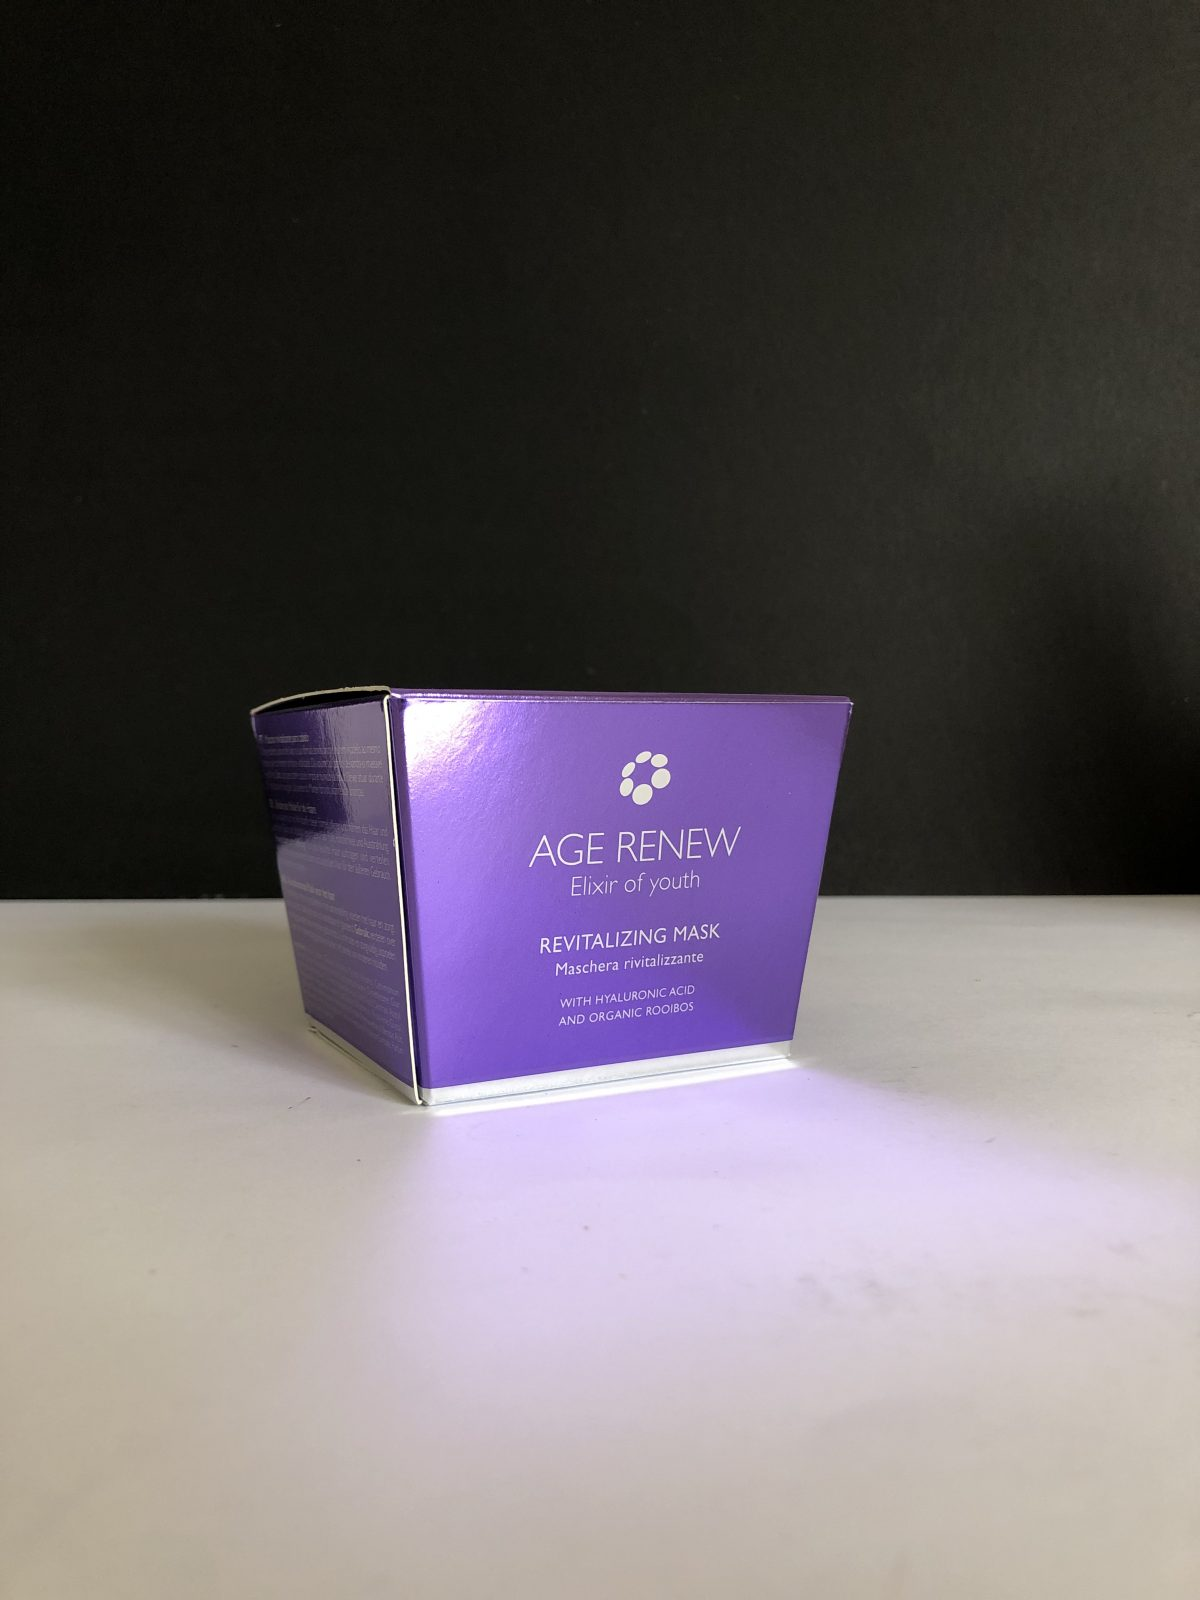 Age Renew Revitalizing Mask